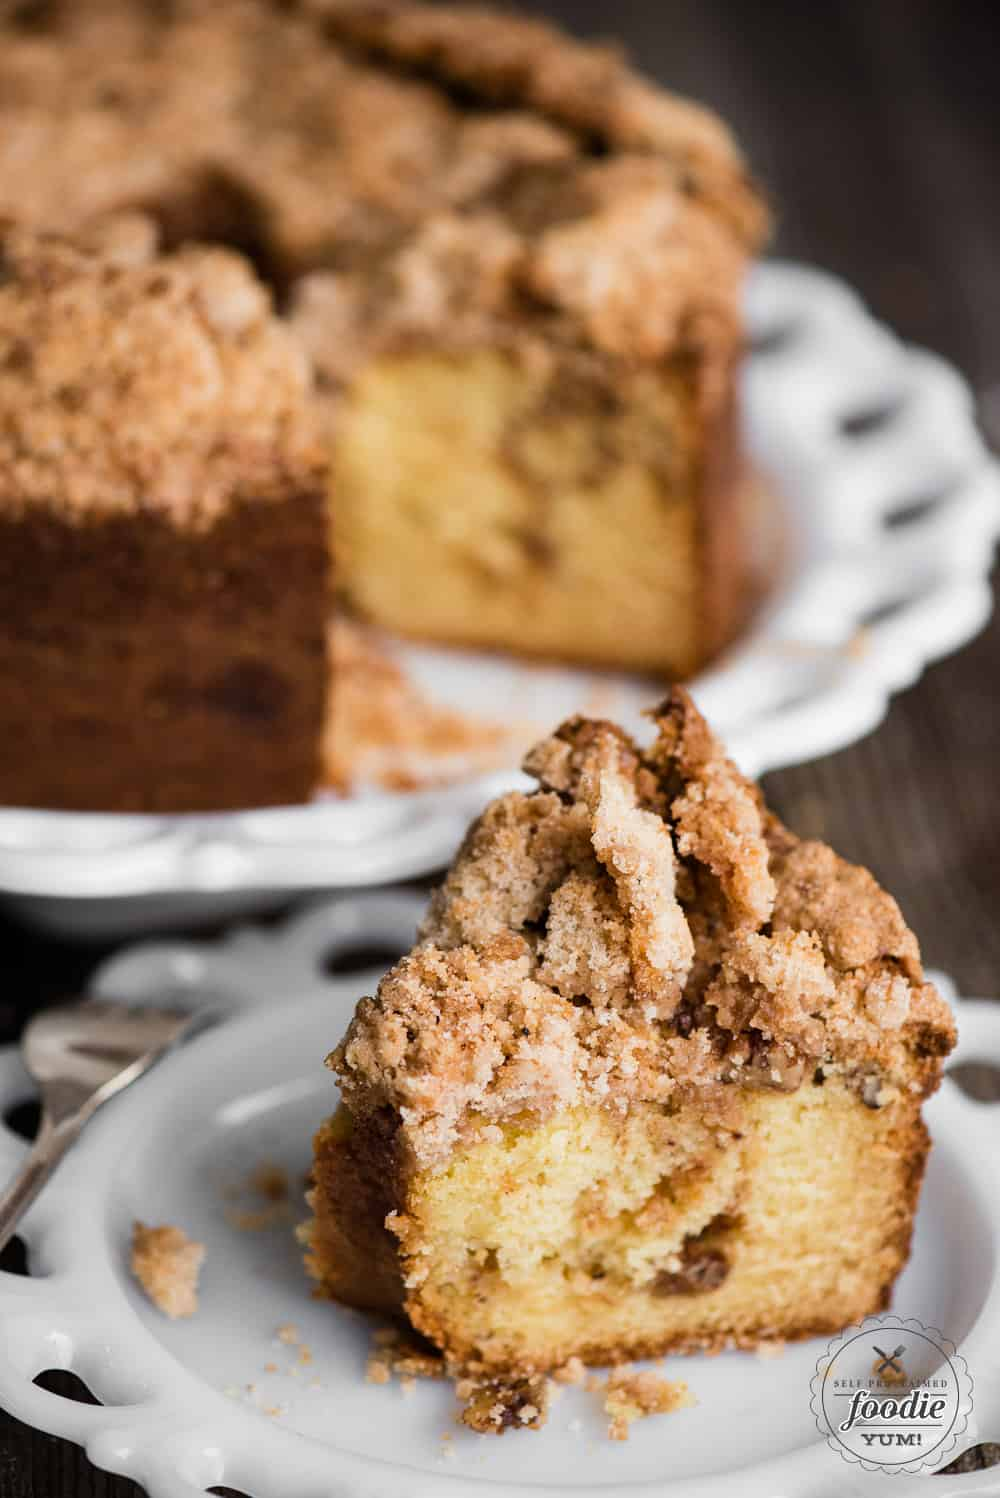 Sour Cream Coffee Cake recipe